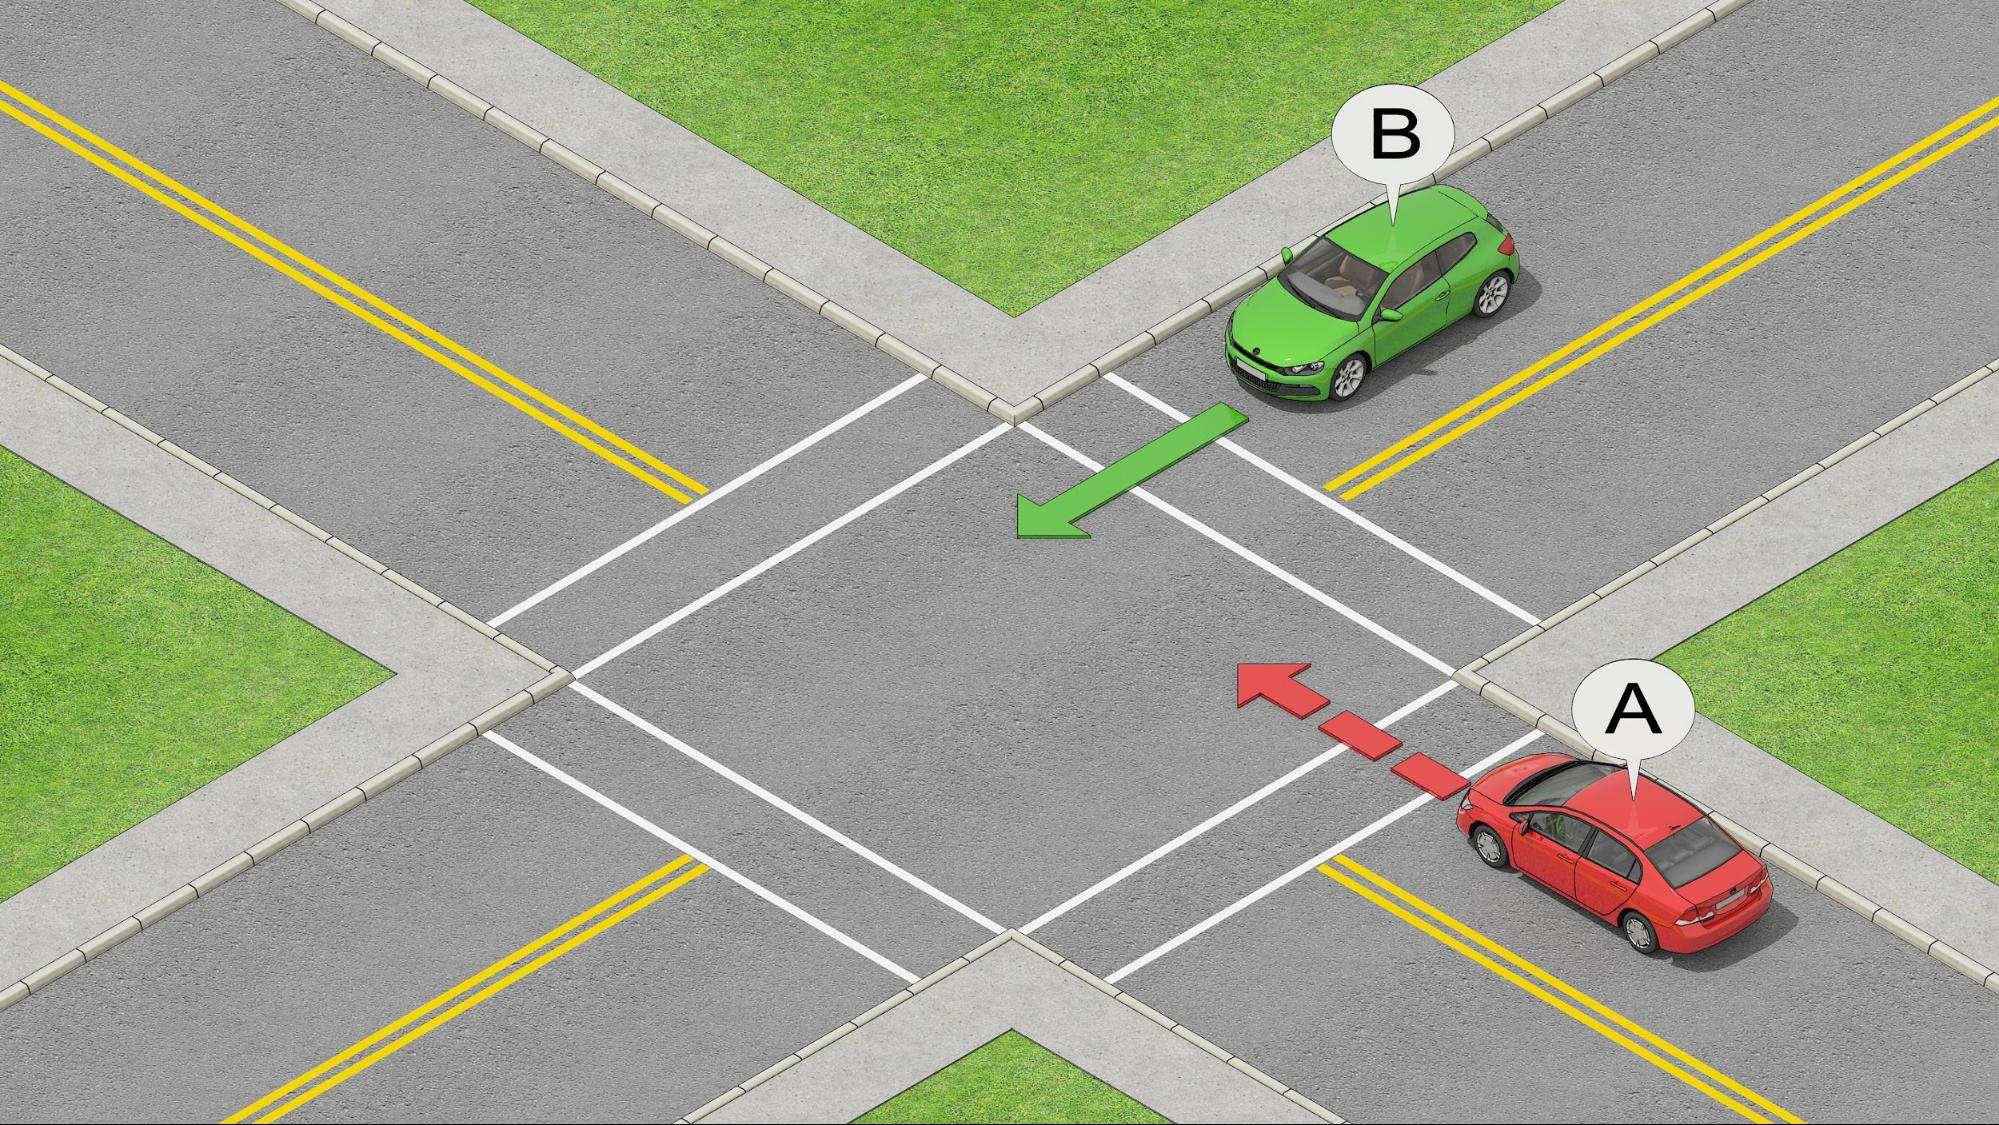 cars on the right have priority